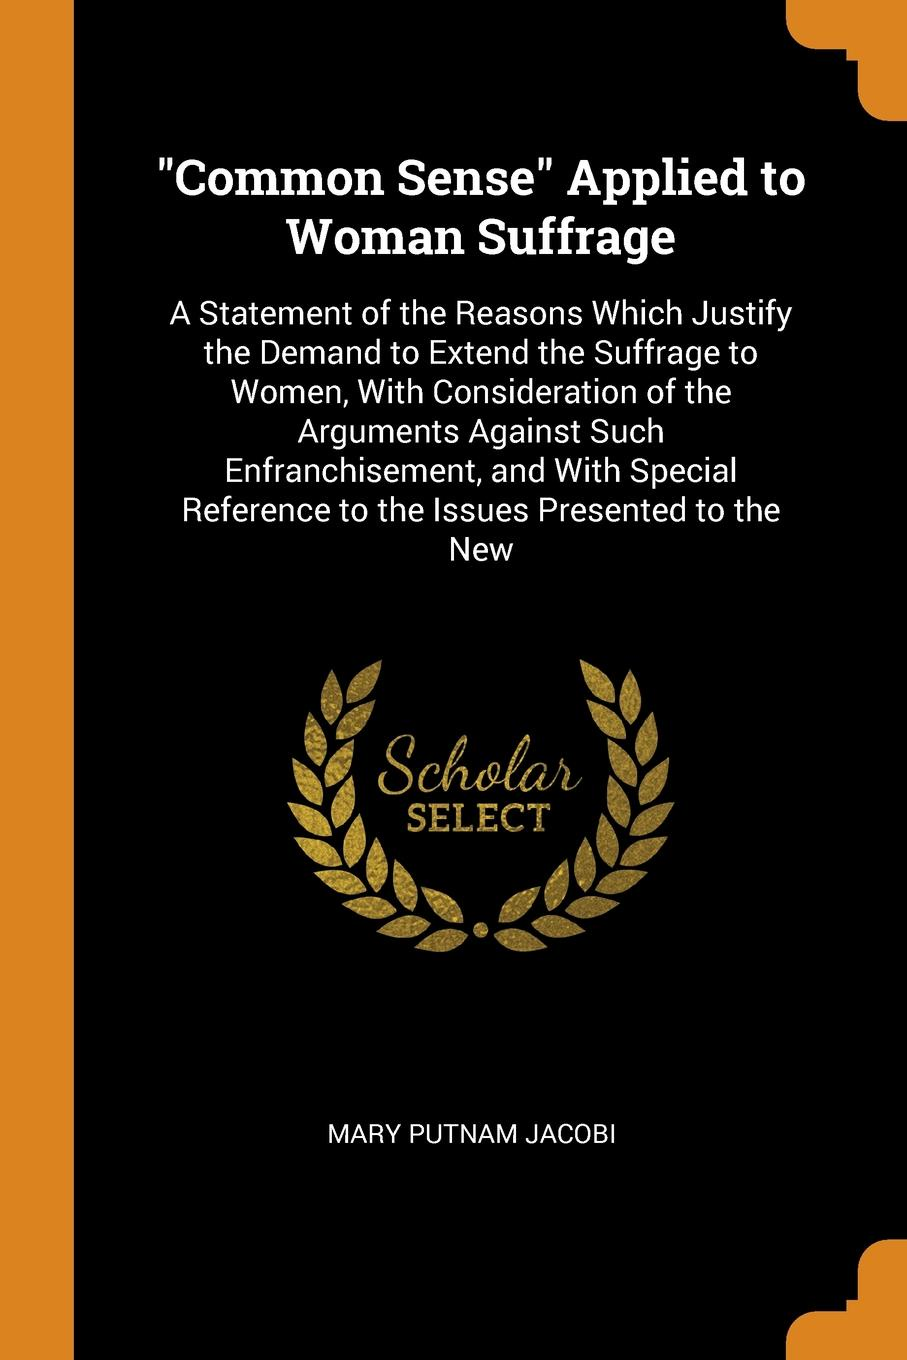 "Mary Putnam Jacobi. ""Common Sense"" Applied to Woman Suffrage. A Statement of the Reasons Which Justify the Demand to Extend the Suffrage to Women, With Consideration of the Arguments Against Such Enfranchisement, and With Special Reference to the Issues Presented to ..."